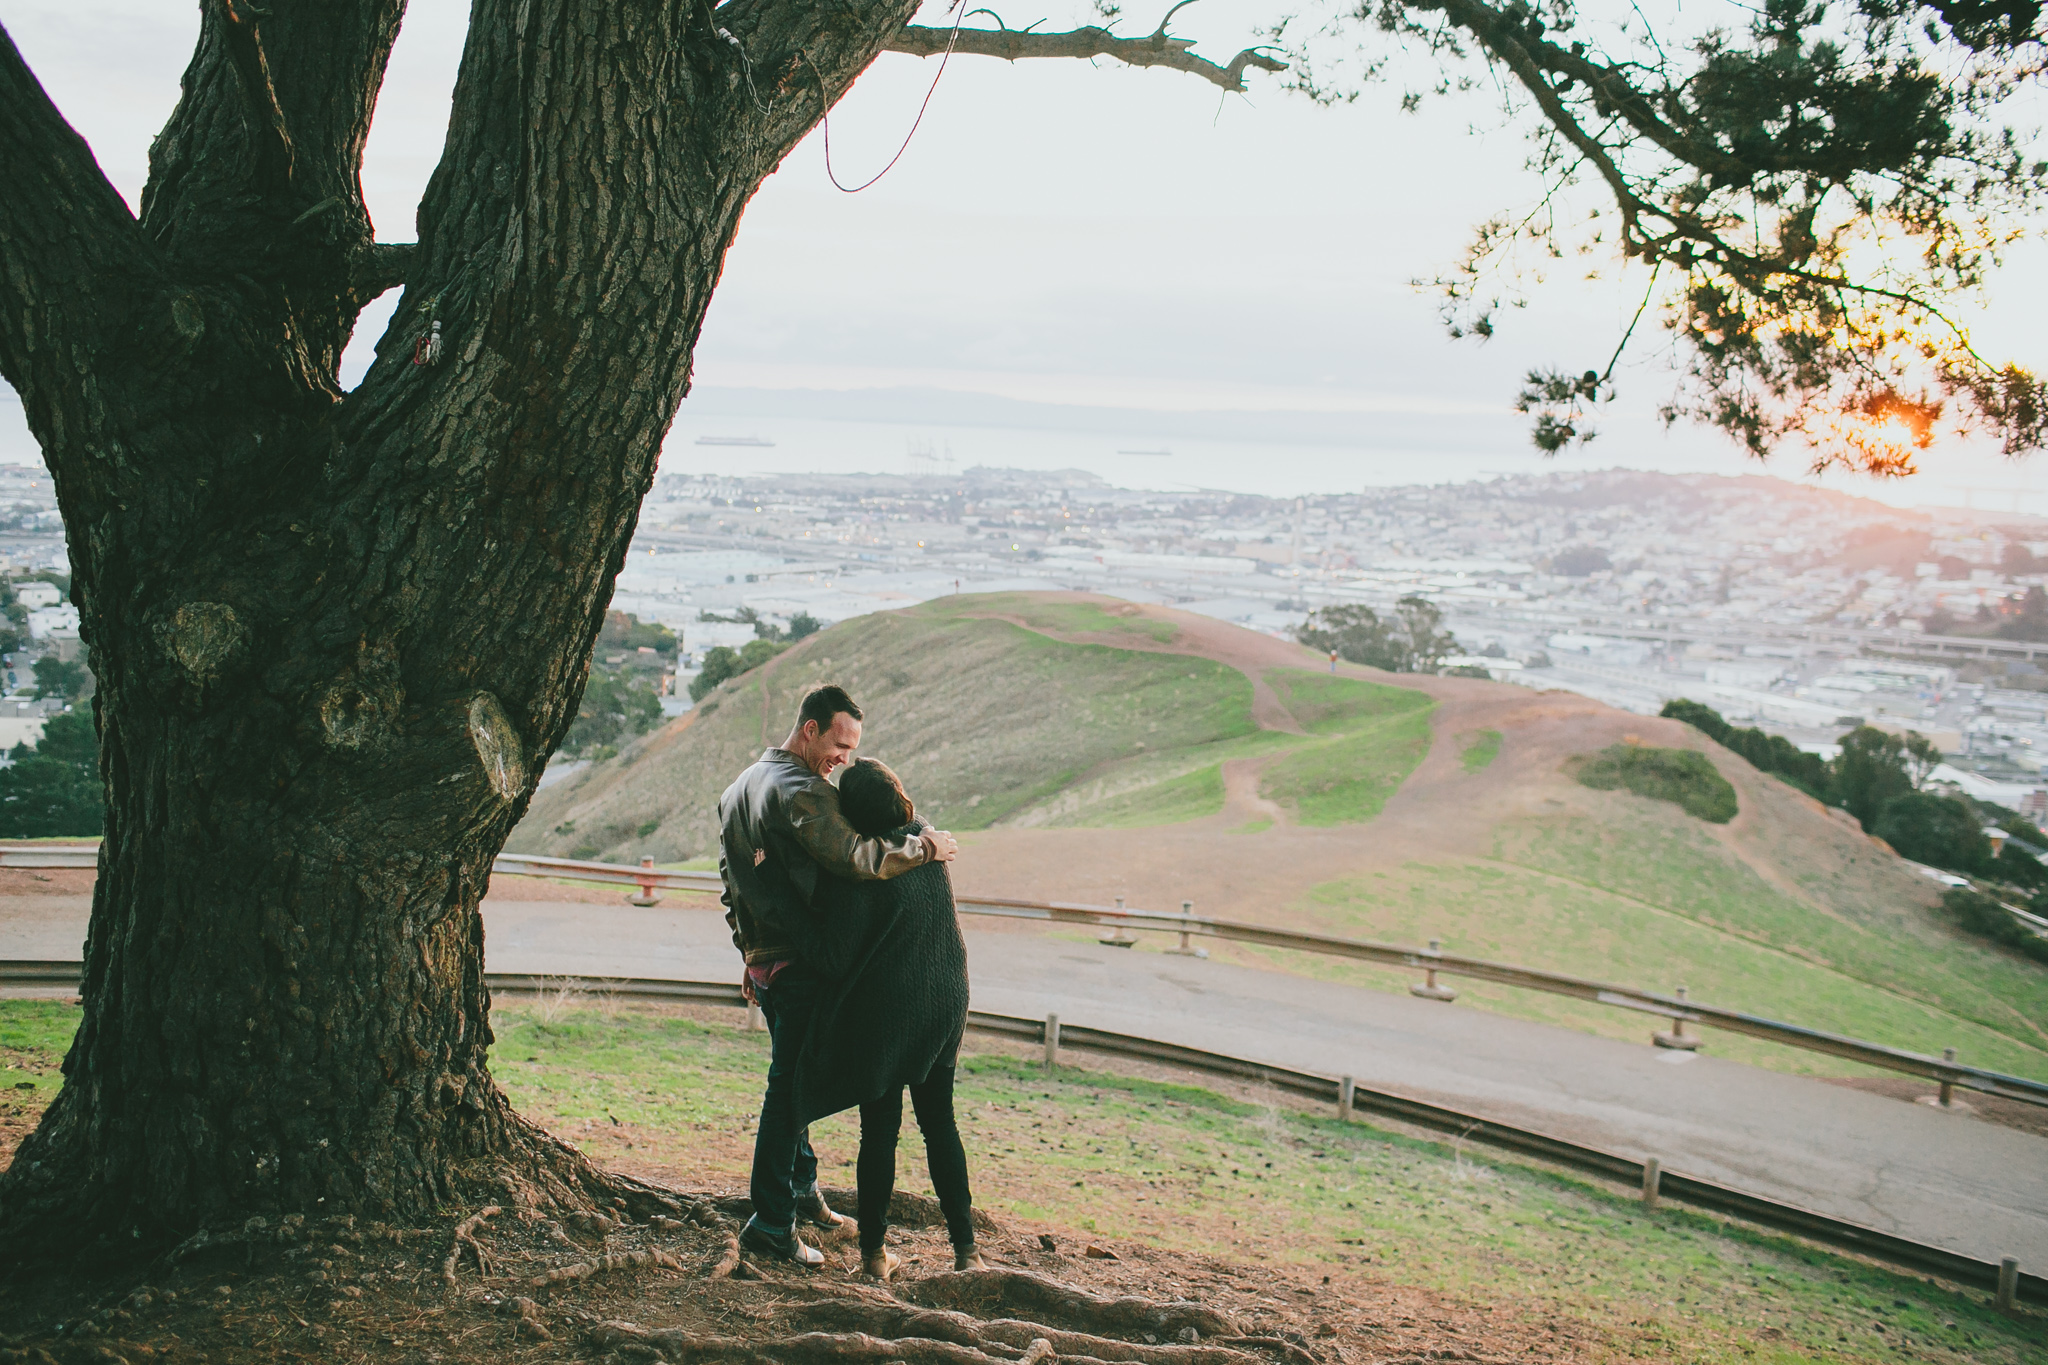 Sunee+Adam-Proposal-KellyBoitanoPhotography_WEB20151229_0011